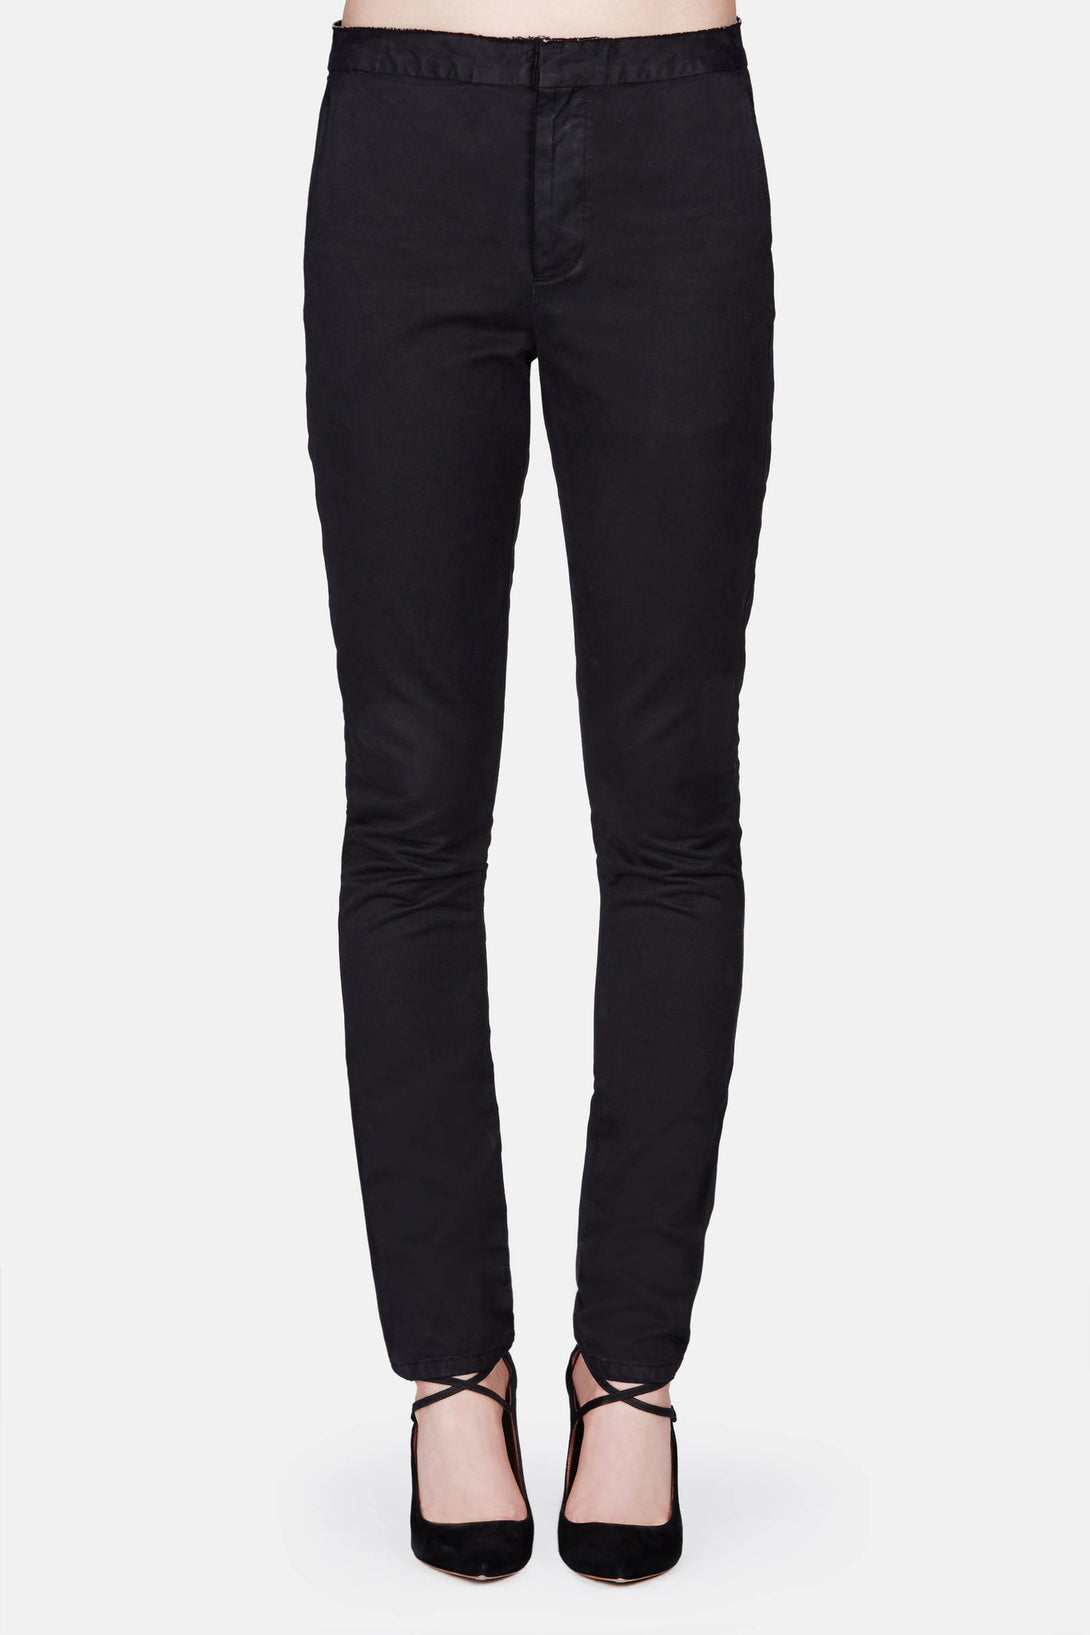 S.D. Raw-Edge Dress Pant - Black